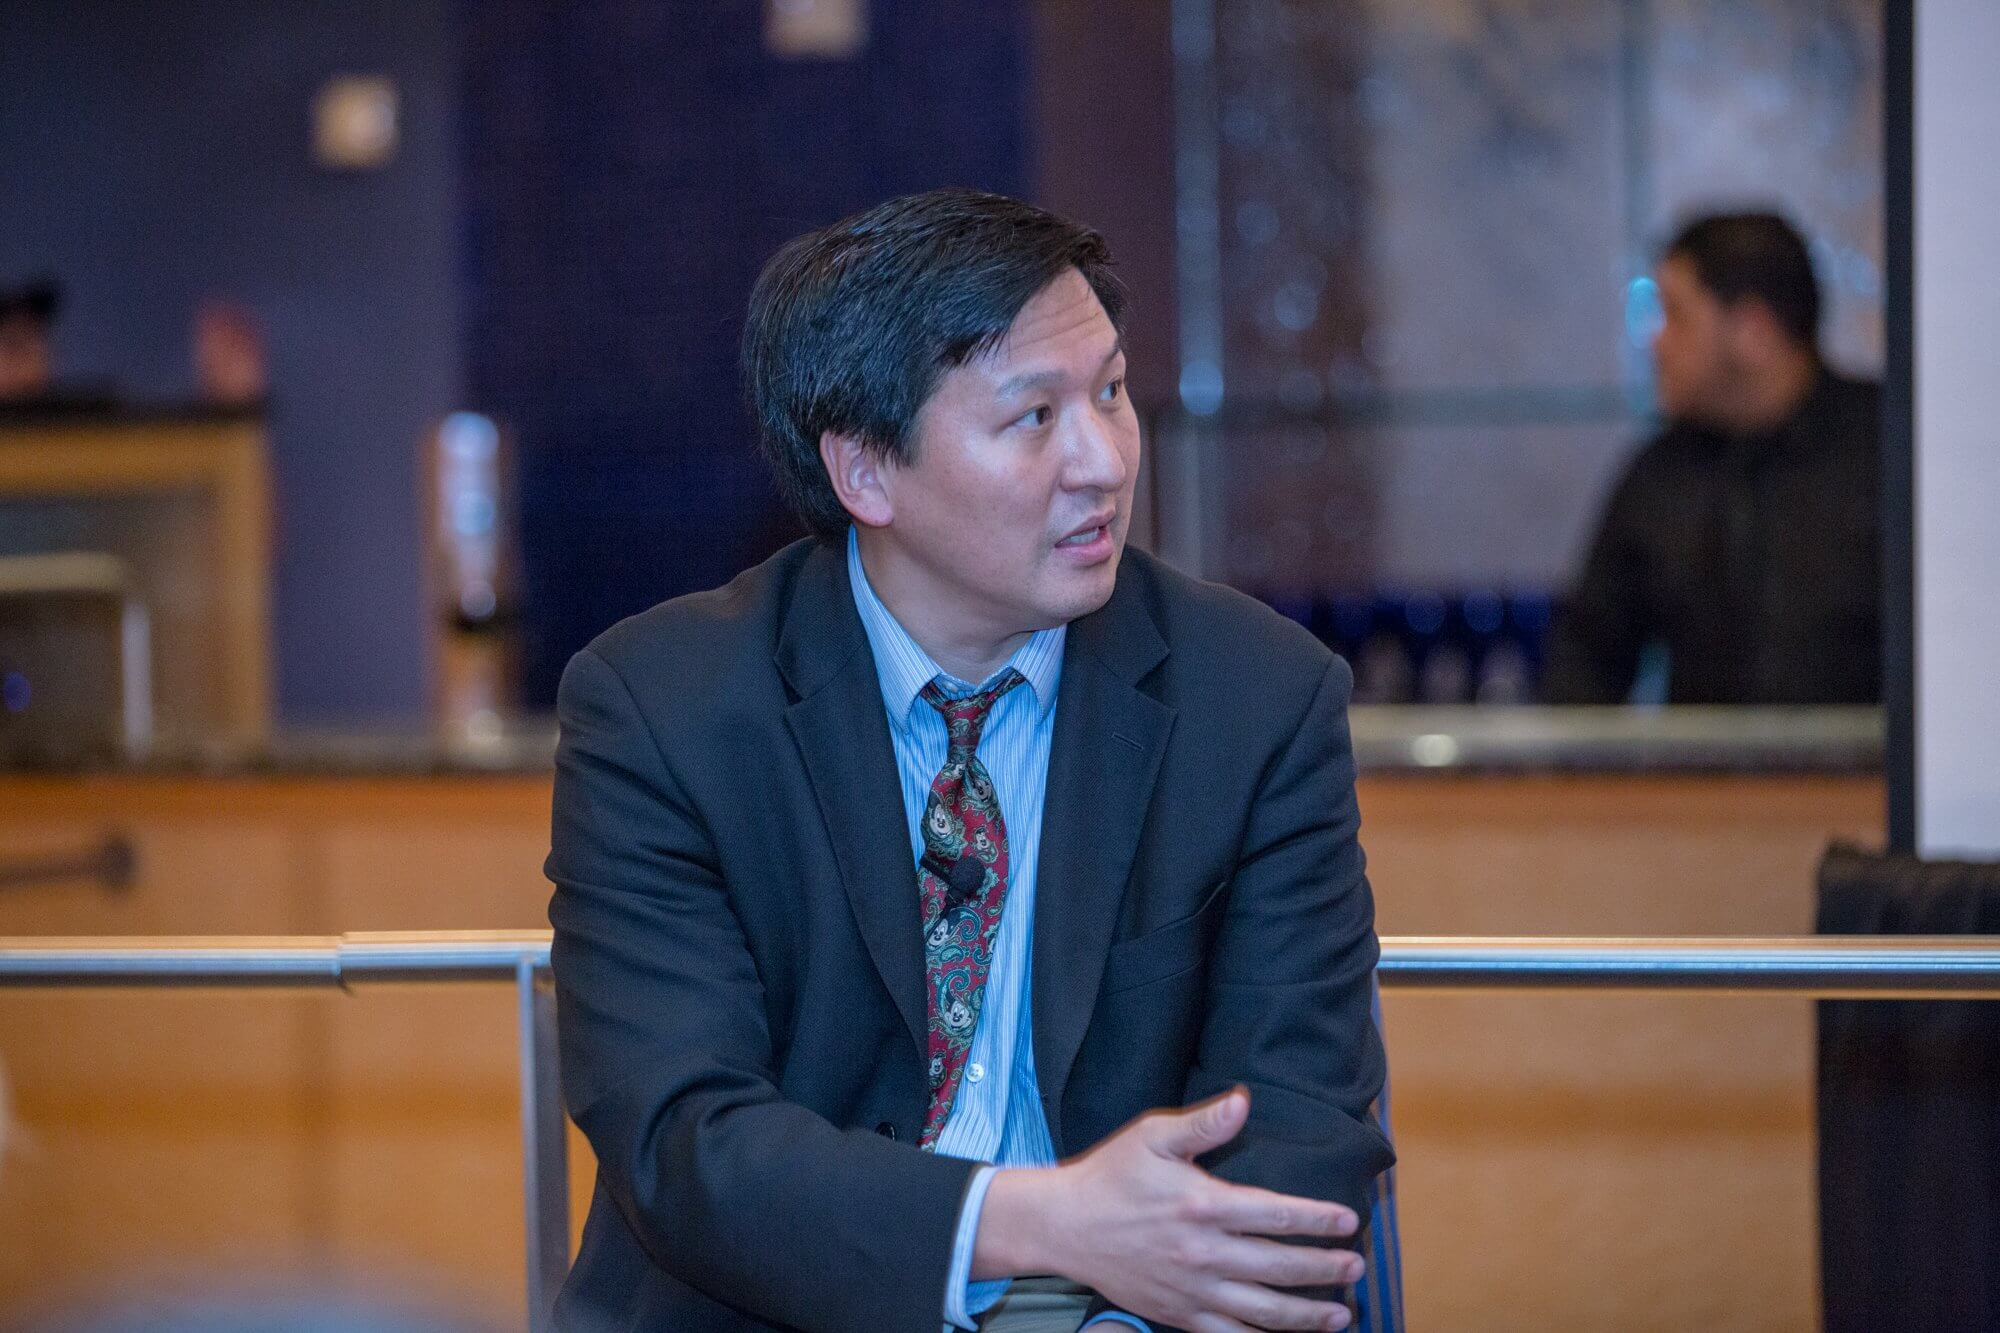 Chester Koh M.D., pediatric urologist and director of the Pediatric Robotic Surgery Program at Texas Children's Hospital.